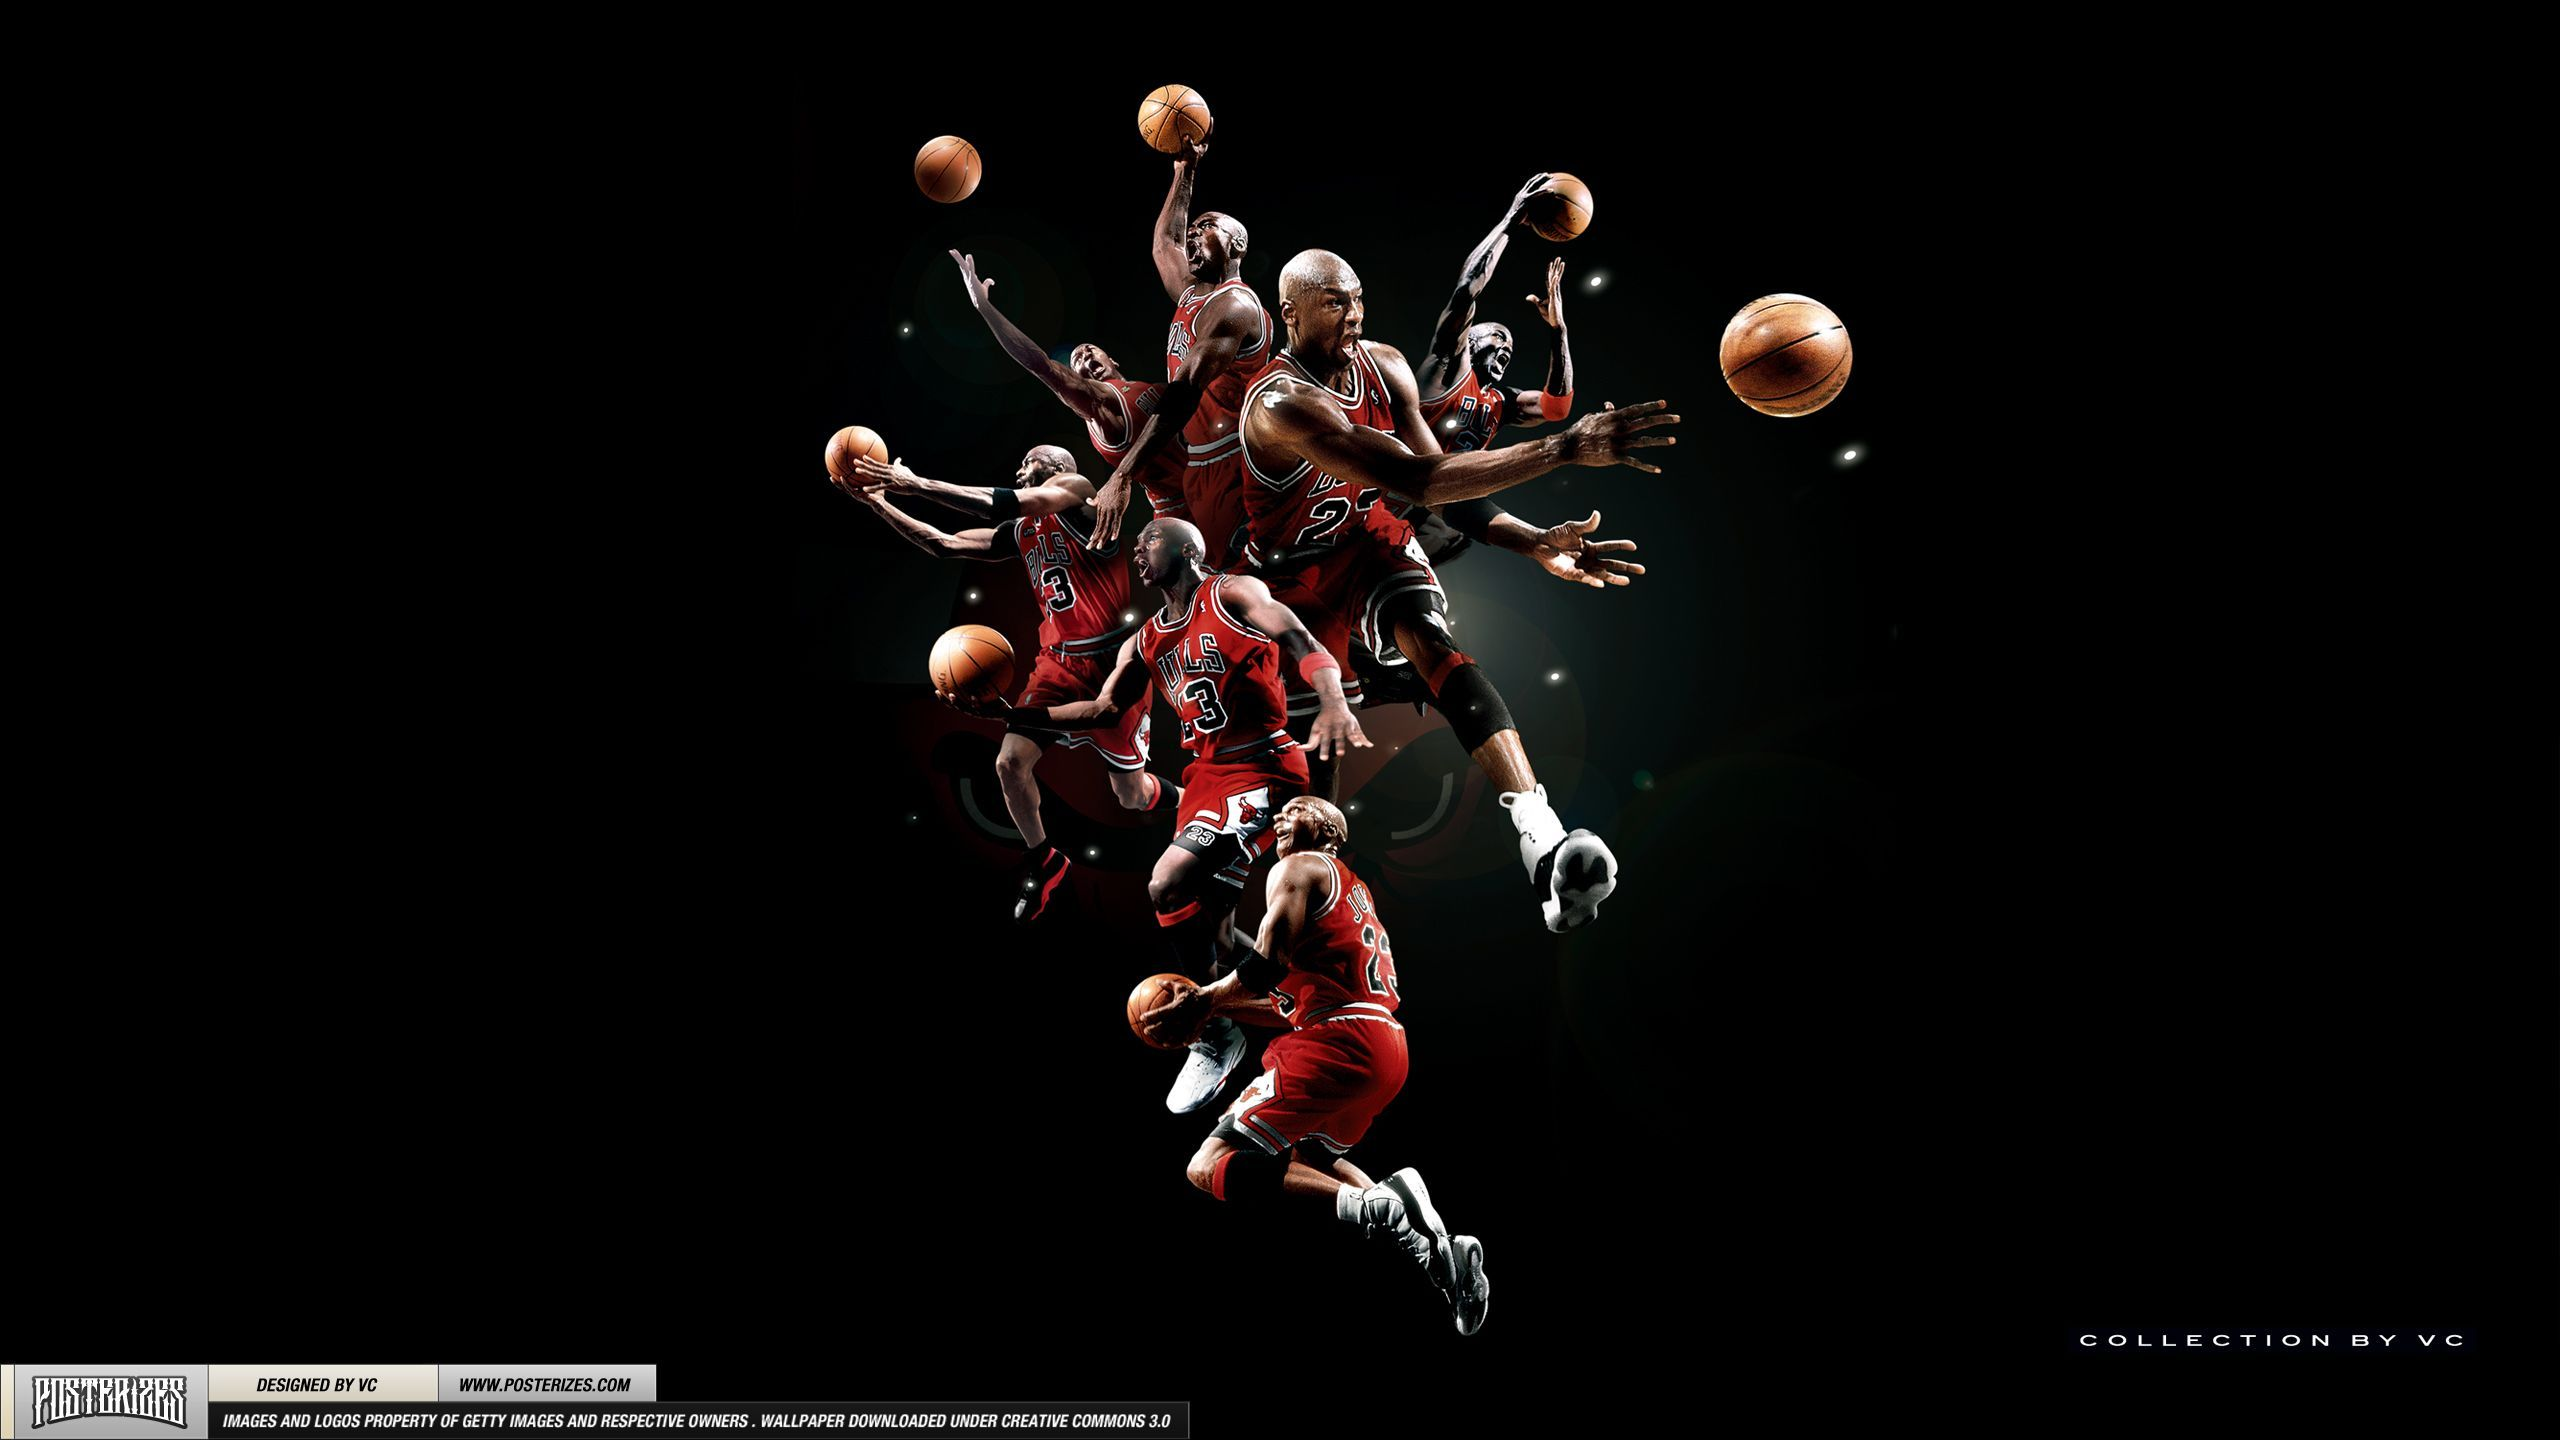 Michael Jordan Backgrounds Group 84 2560x1440